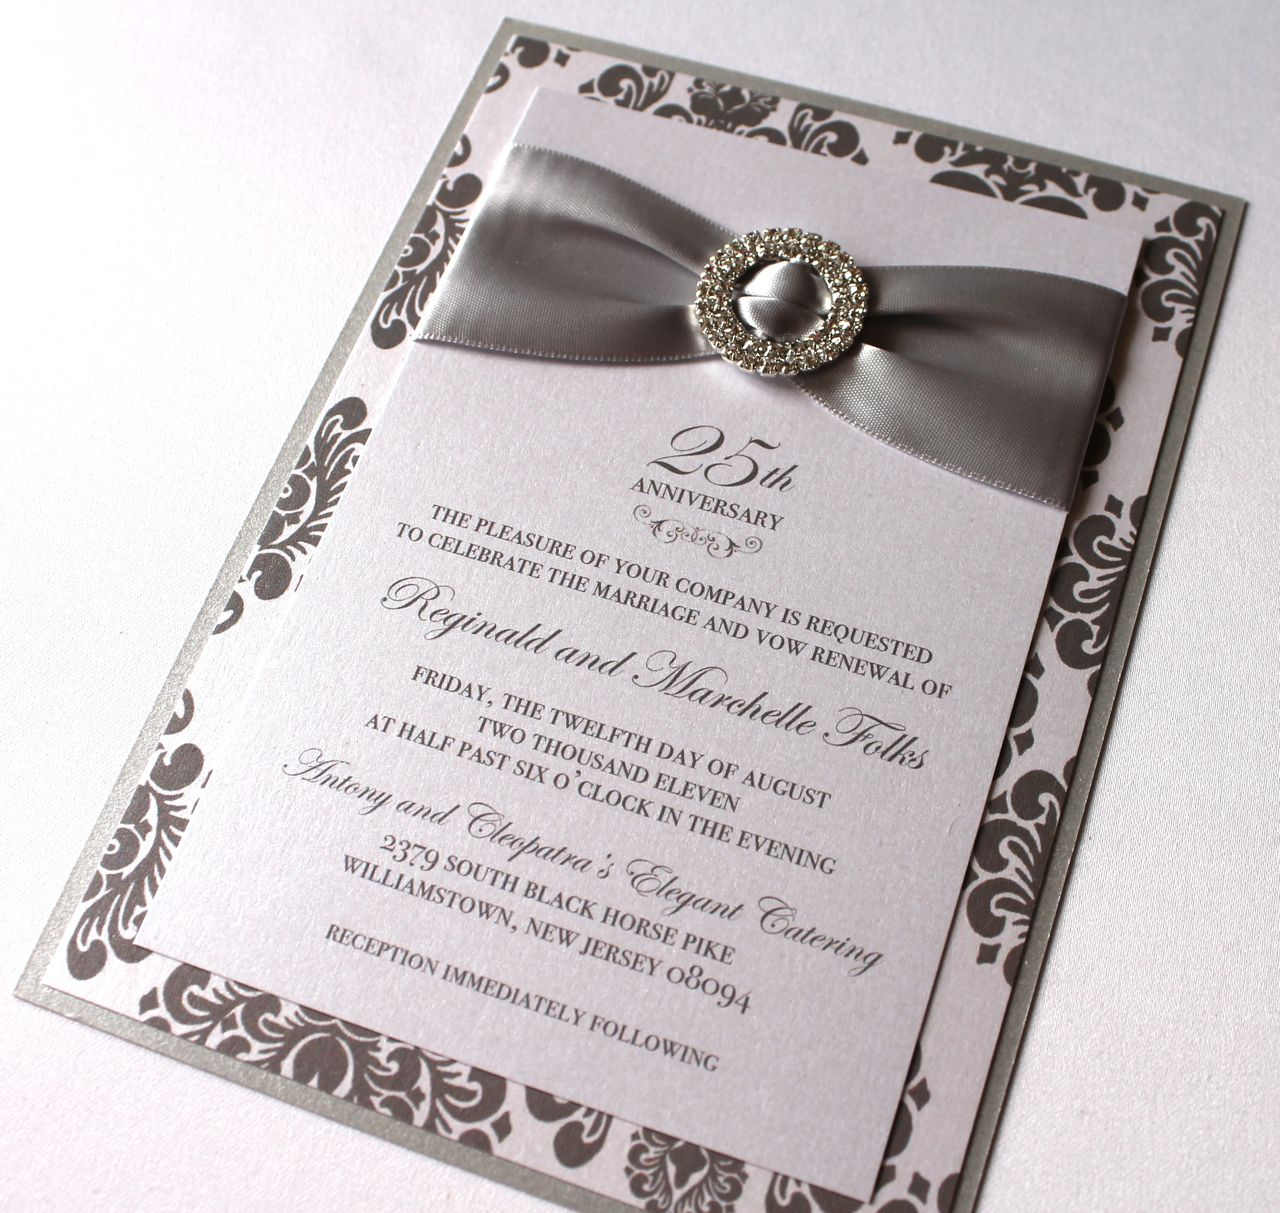 Embellished paperie blog 25th anniversary invitations silver and white damask - Wedding anniversary invitations ...